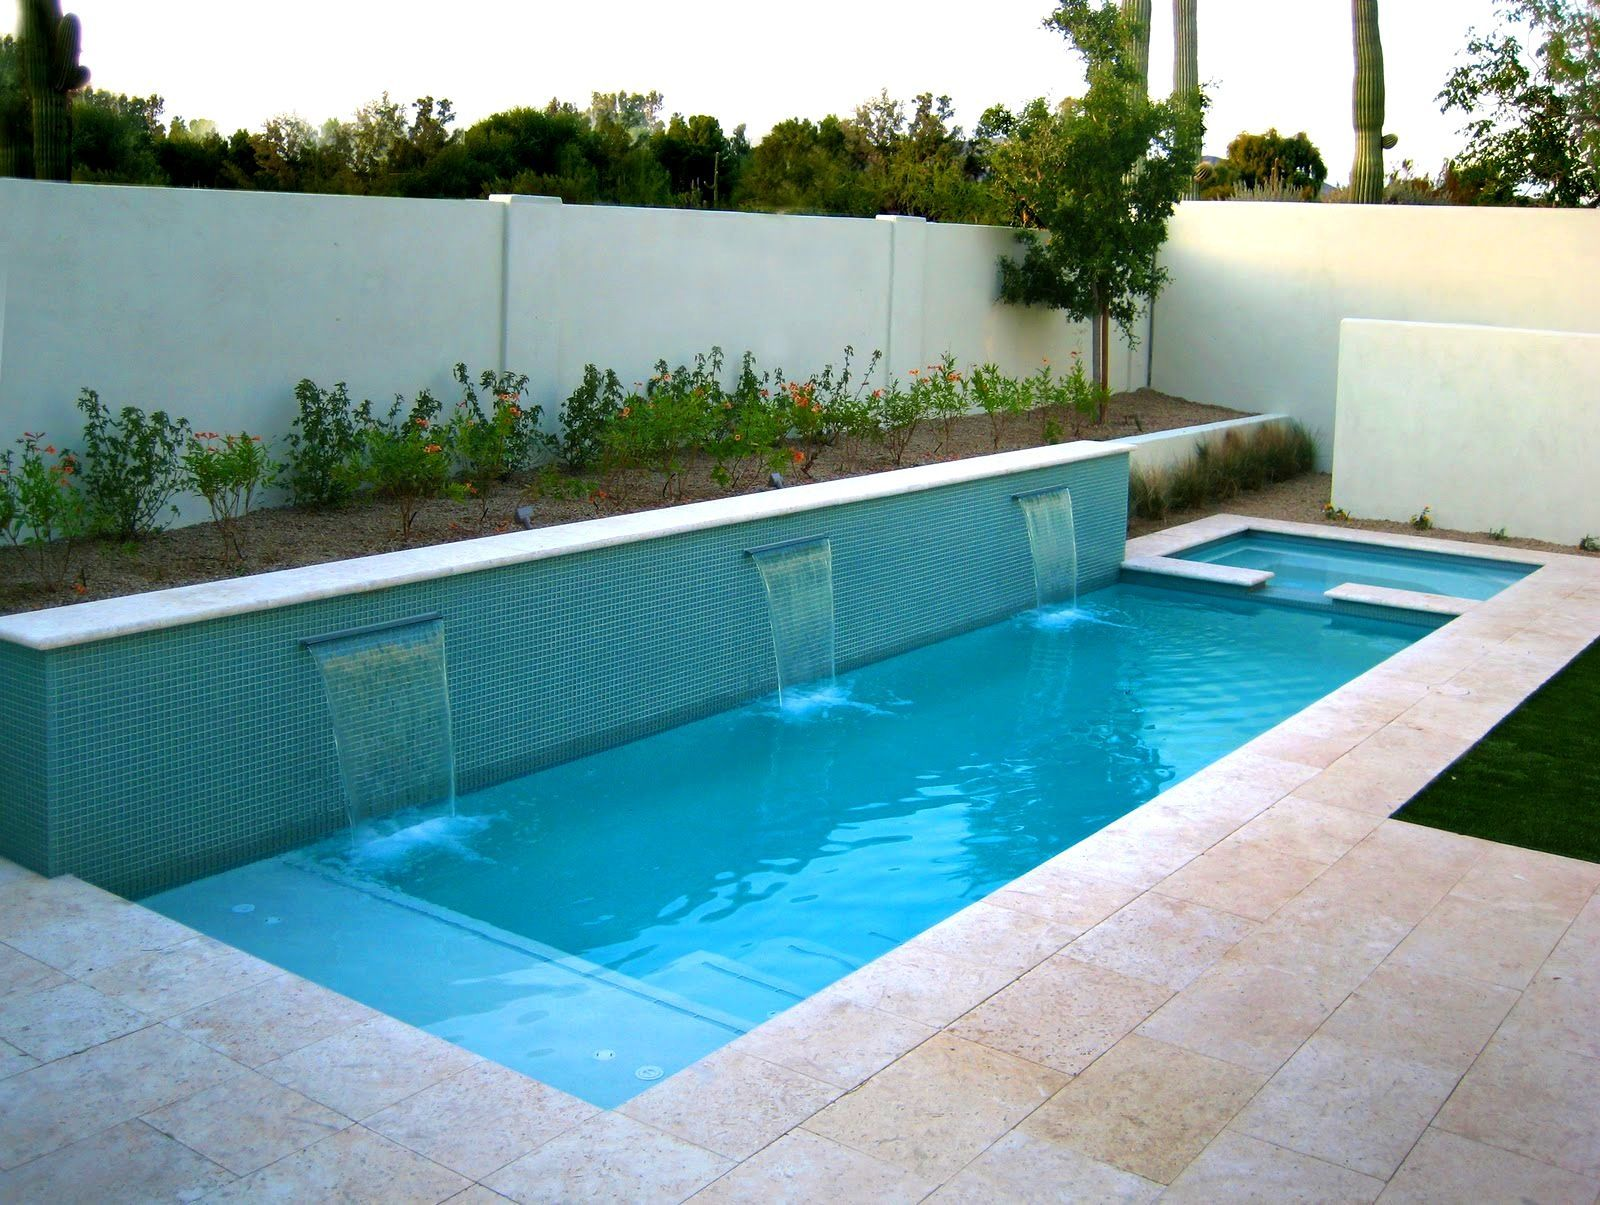 Furniture Winsome Images About Small Pool Ideas Swimming Pools Aacdbcedfc Affordable Inground Above Small Pool Design Small Inground Pool Small Swimming Pools